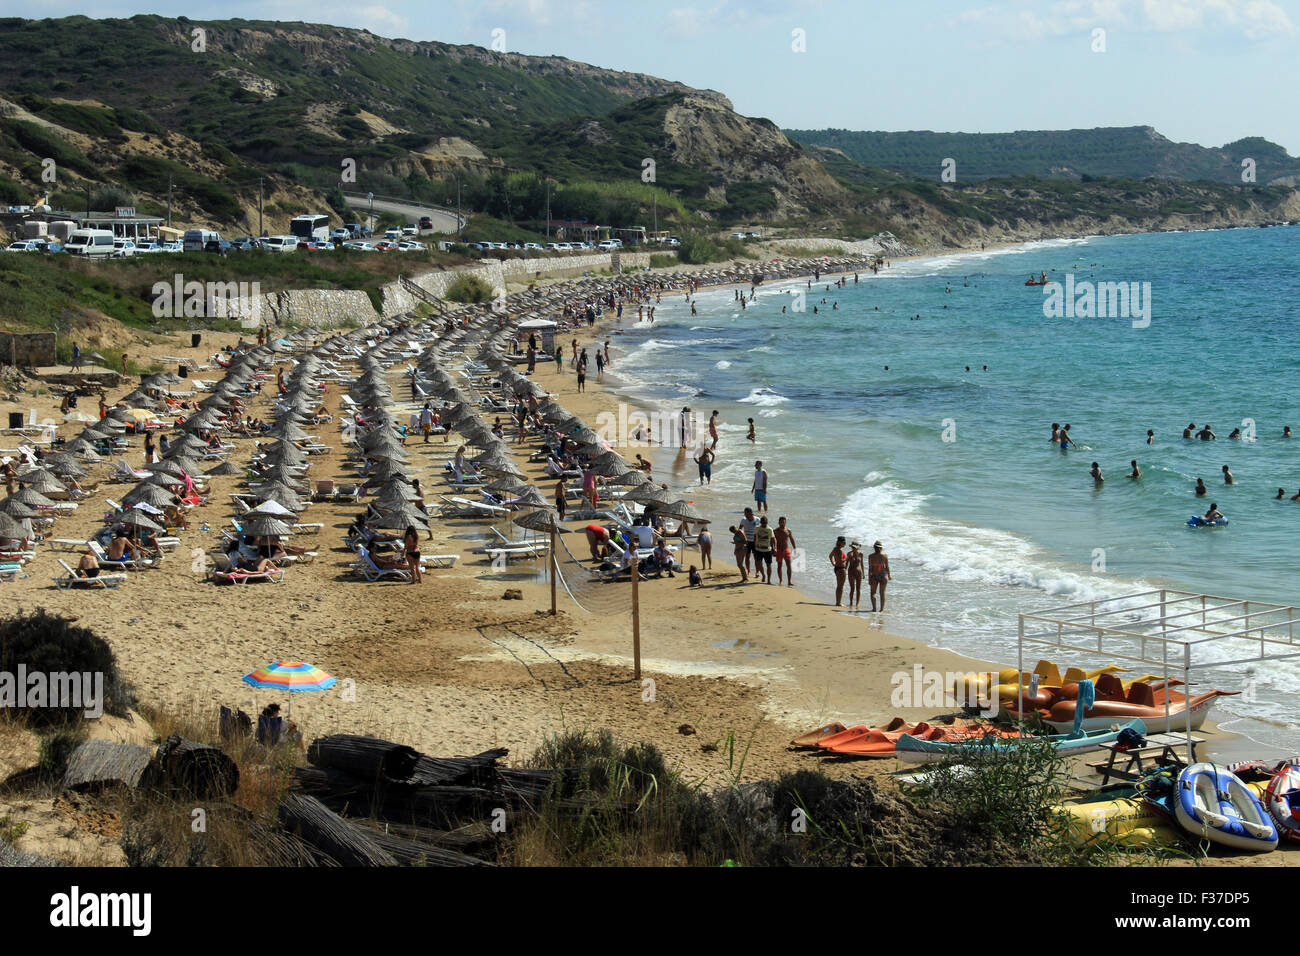 Izmir, Turkey - September 26, 2015: People are taking sun bath at the sandy coast of Bozcaada, Canakkale, Turkey Stock Photo